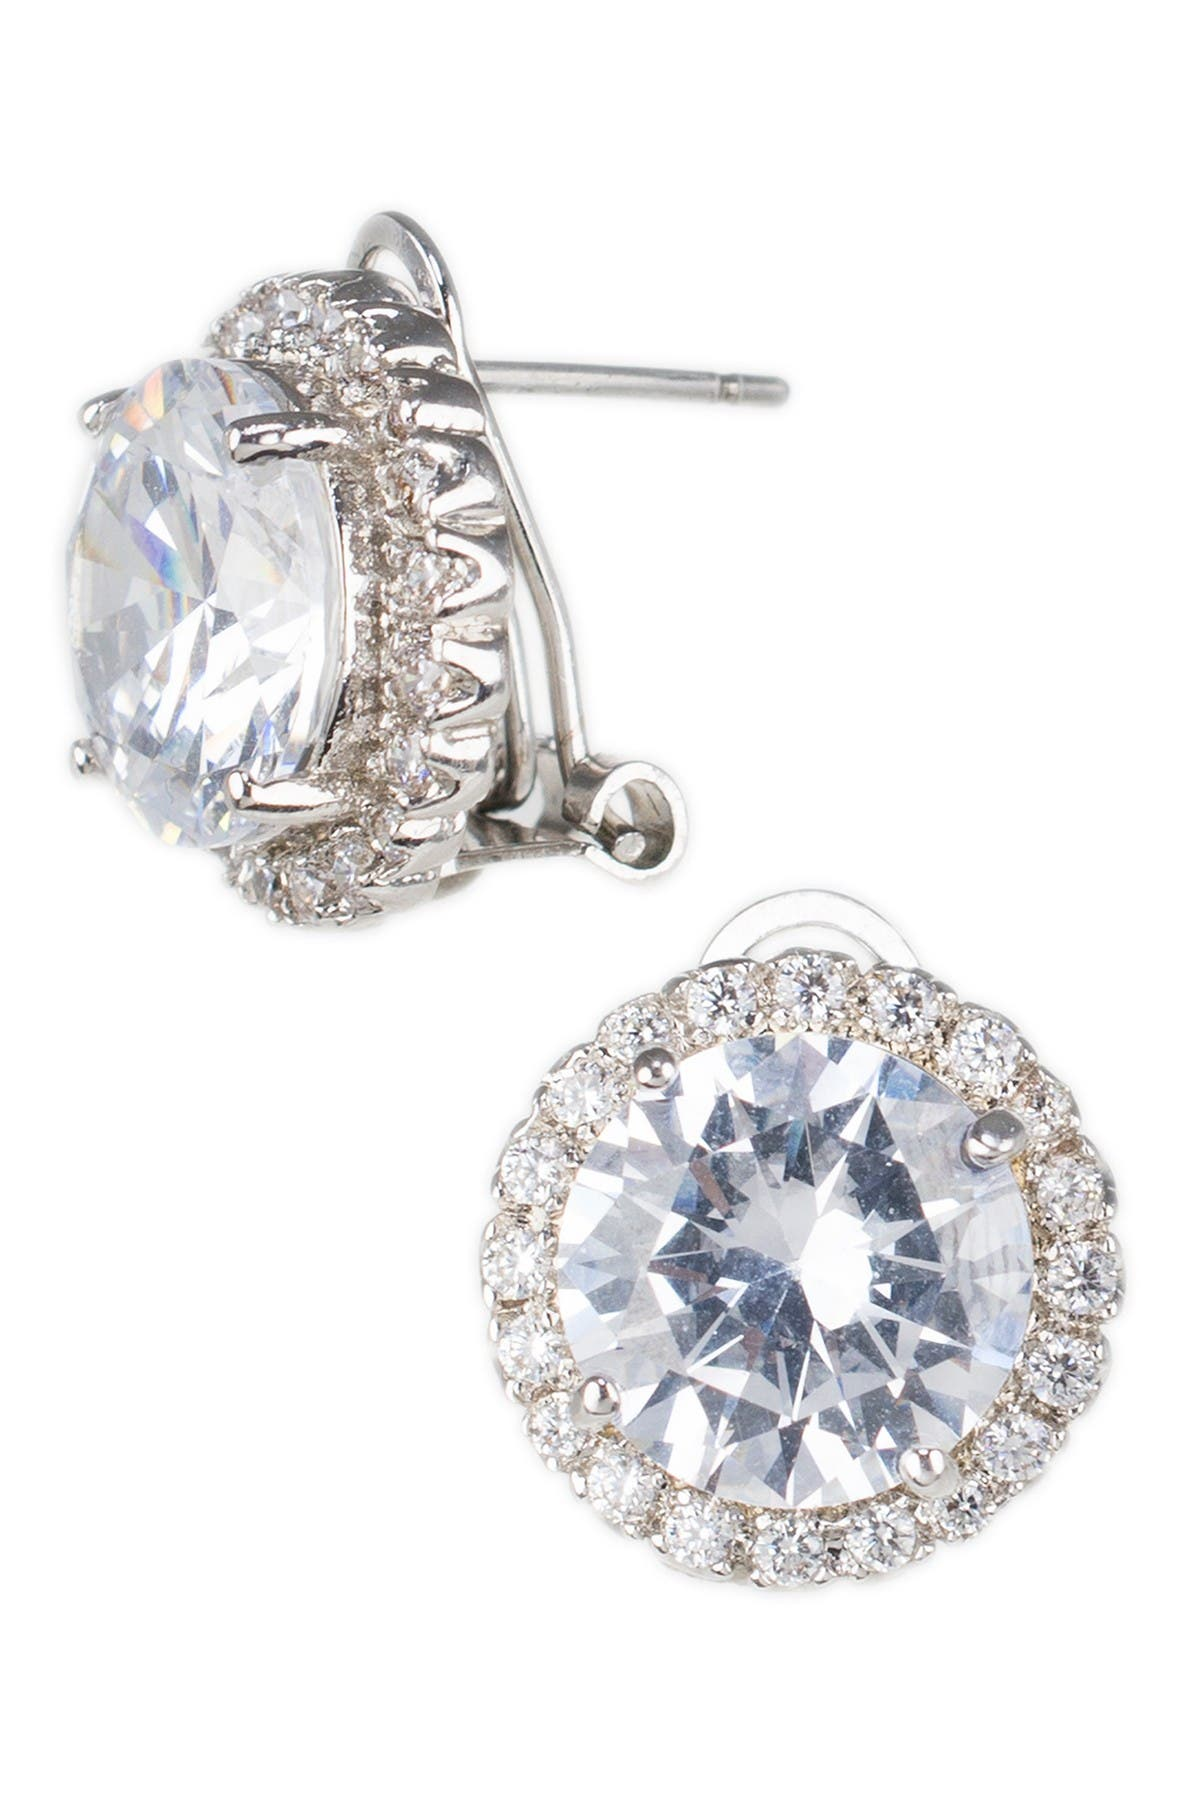 Image of CZ By Kenneth Jay Lane 15mm Halo CZ Stud Earrings